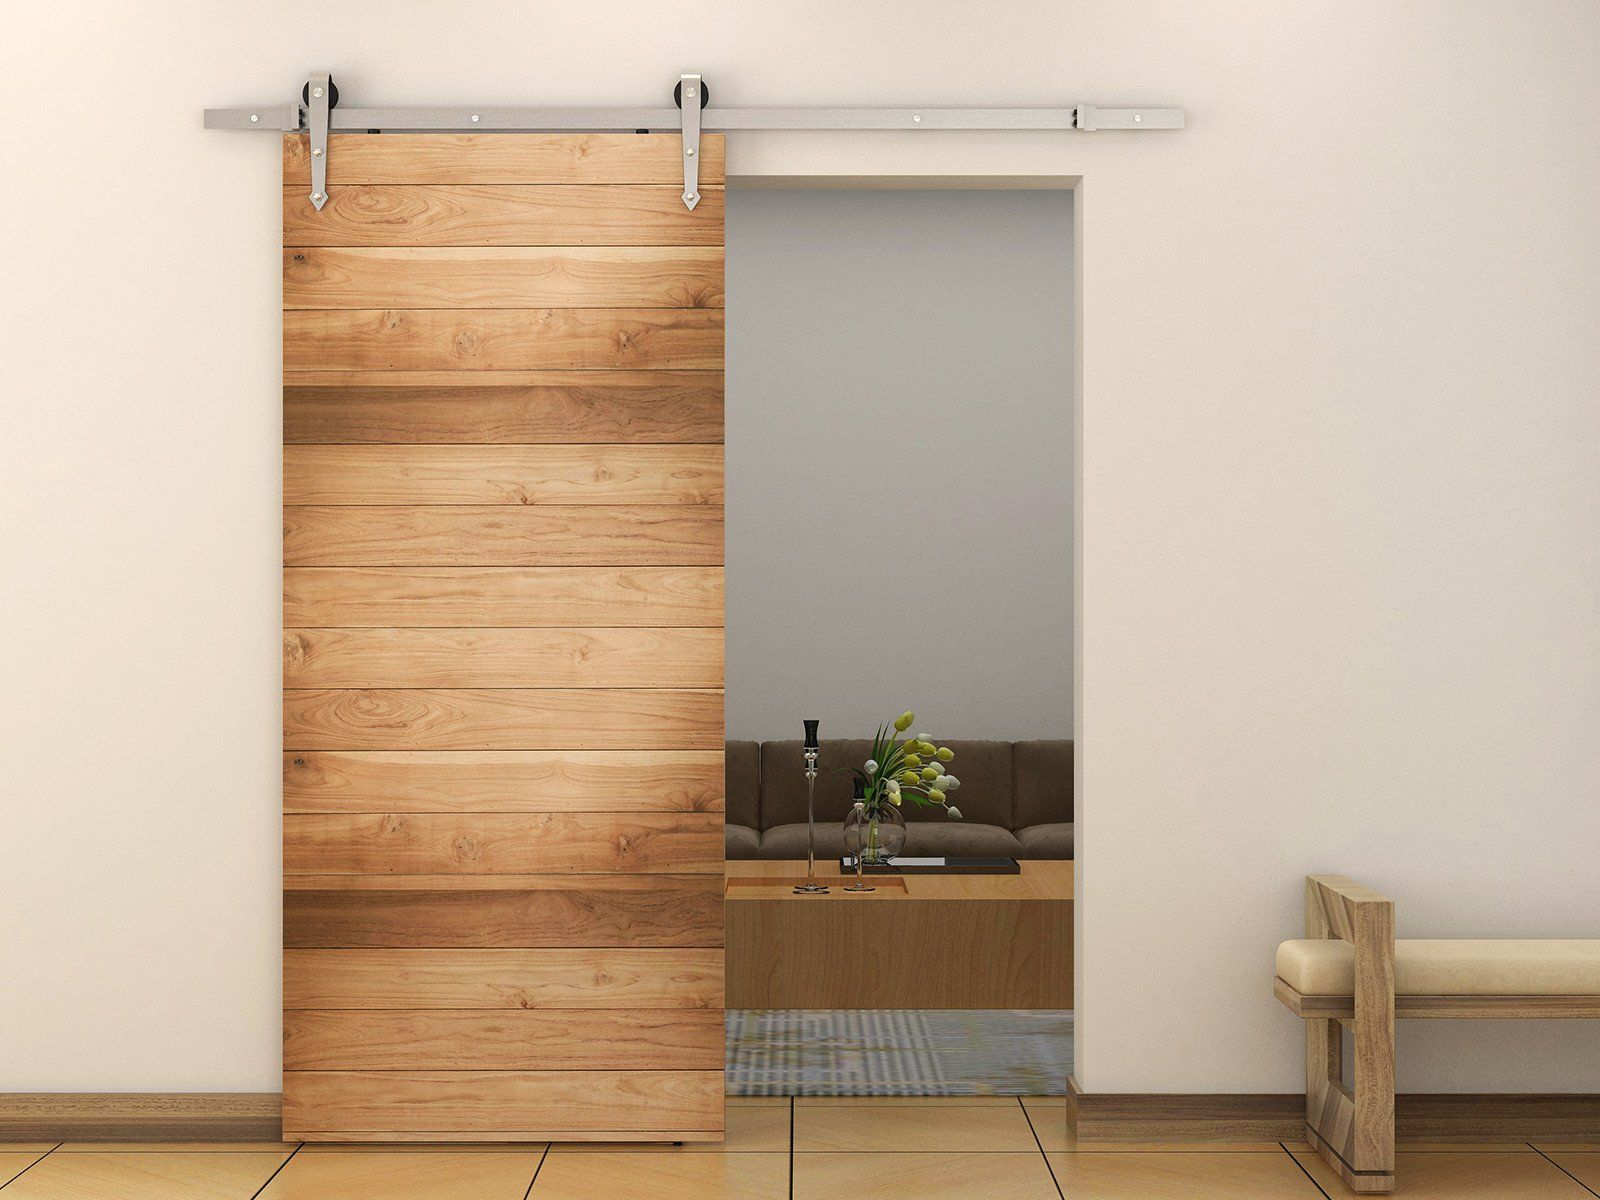 Uncategorized Interior Barn Style Sliding Door Hardware 27 awesome sliding barn door ideas for the home 6 foot hardware kit satin nickle tsq08 doors gates